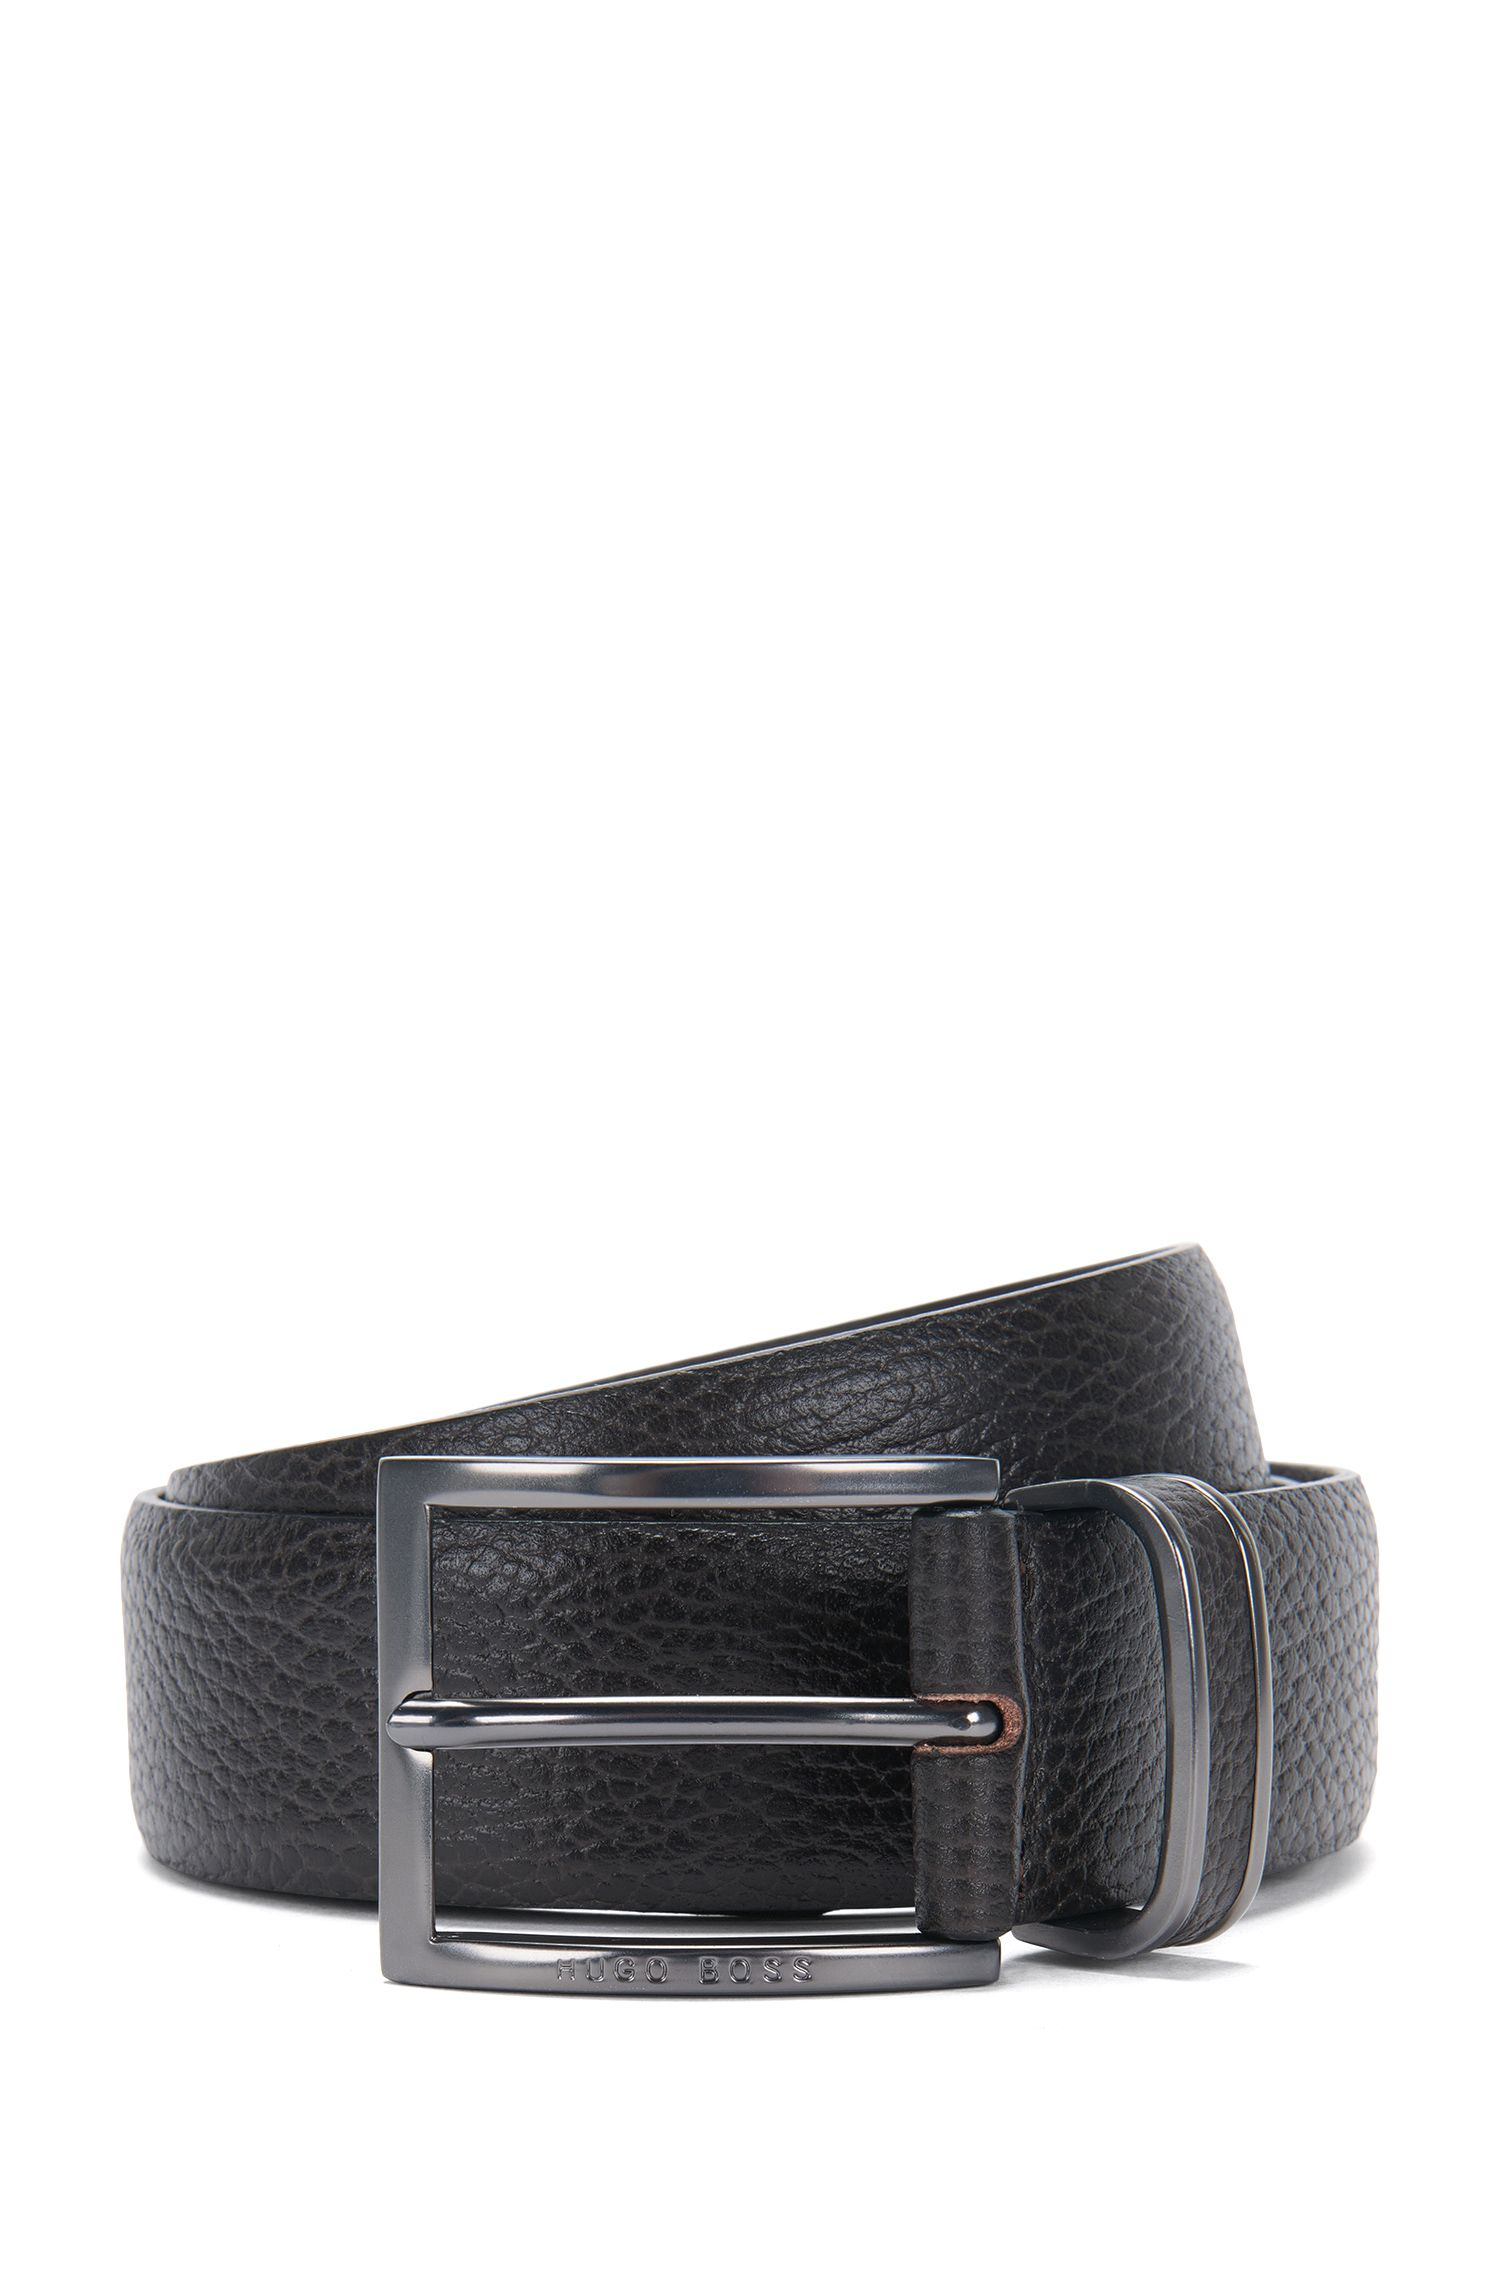 Pin-buckle belt in grained leather